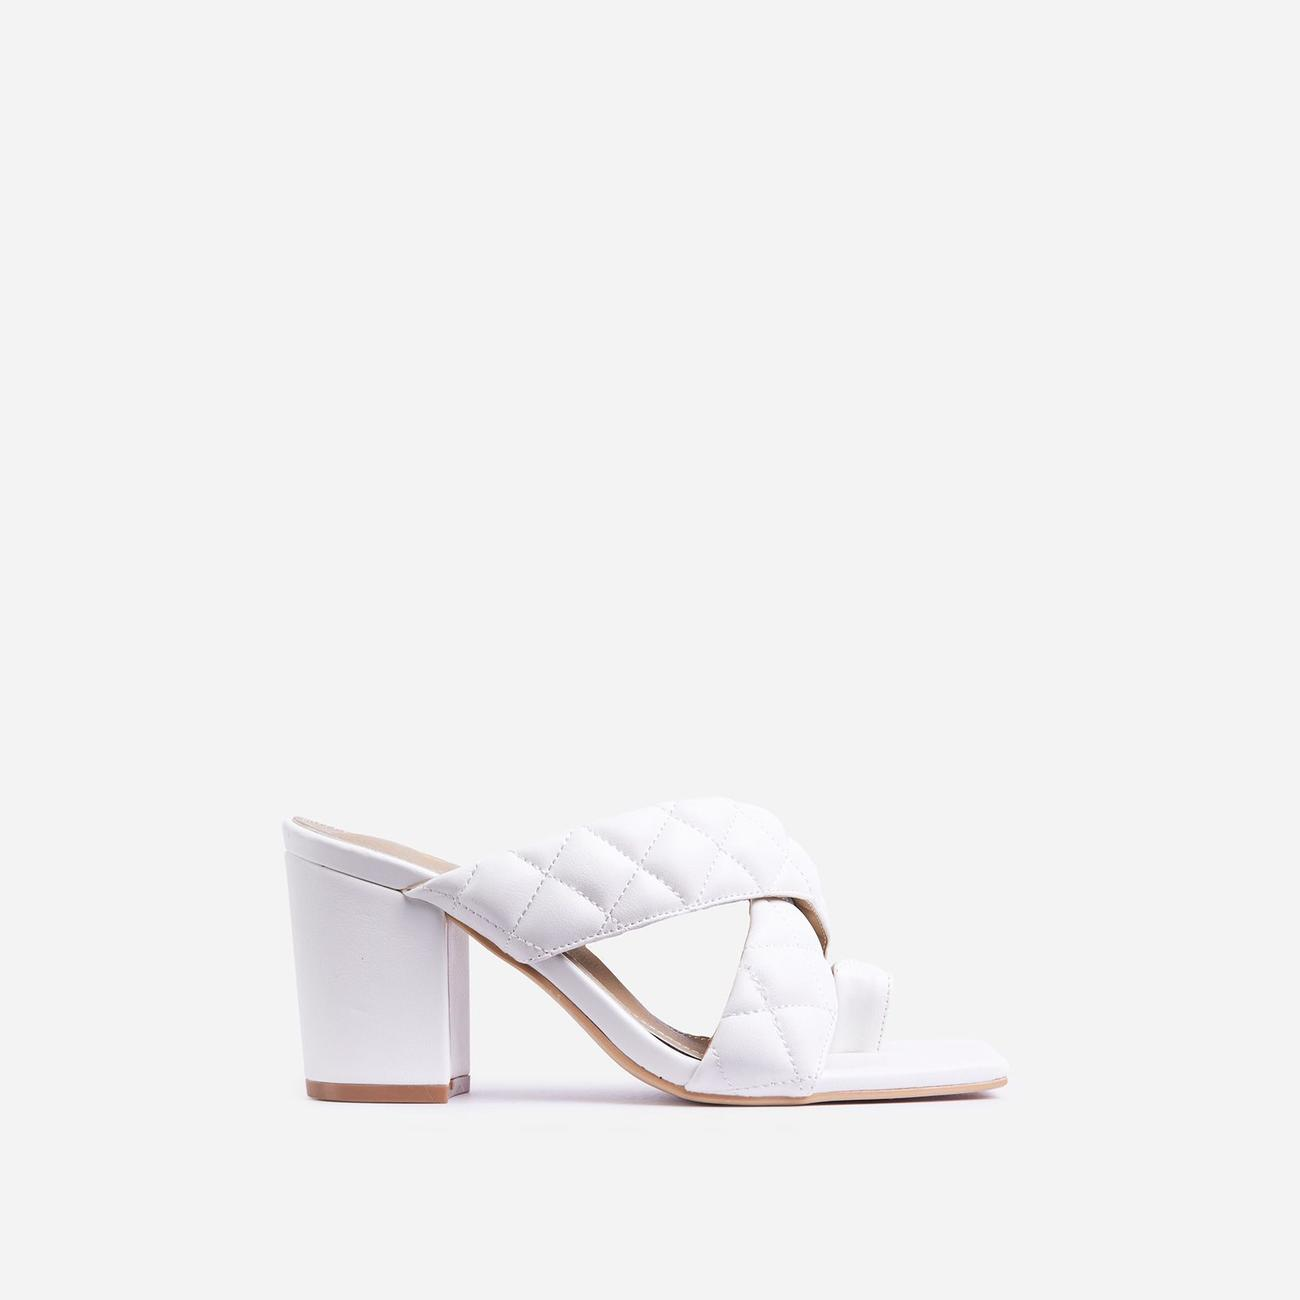 Sugar High Quilted Crossover Square Peep Toe Midi Block Heel Mule In White Faux Leather Image 1